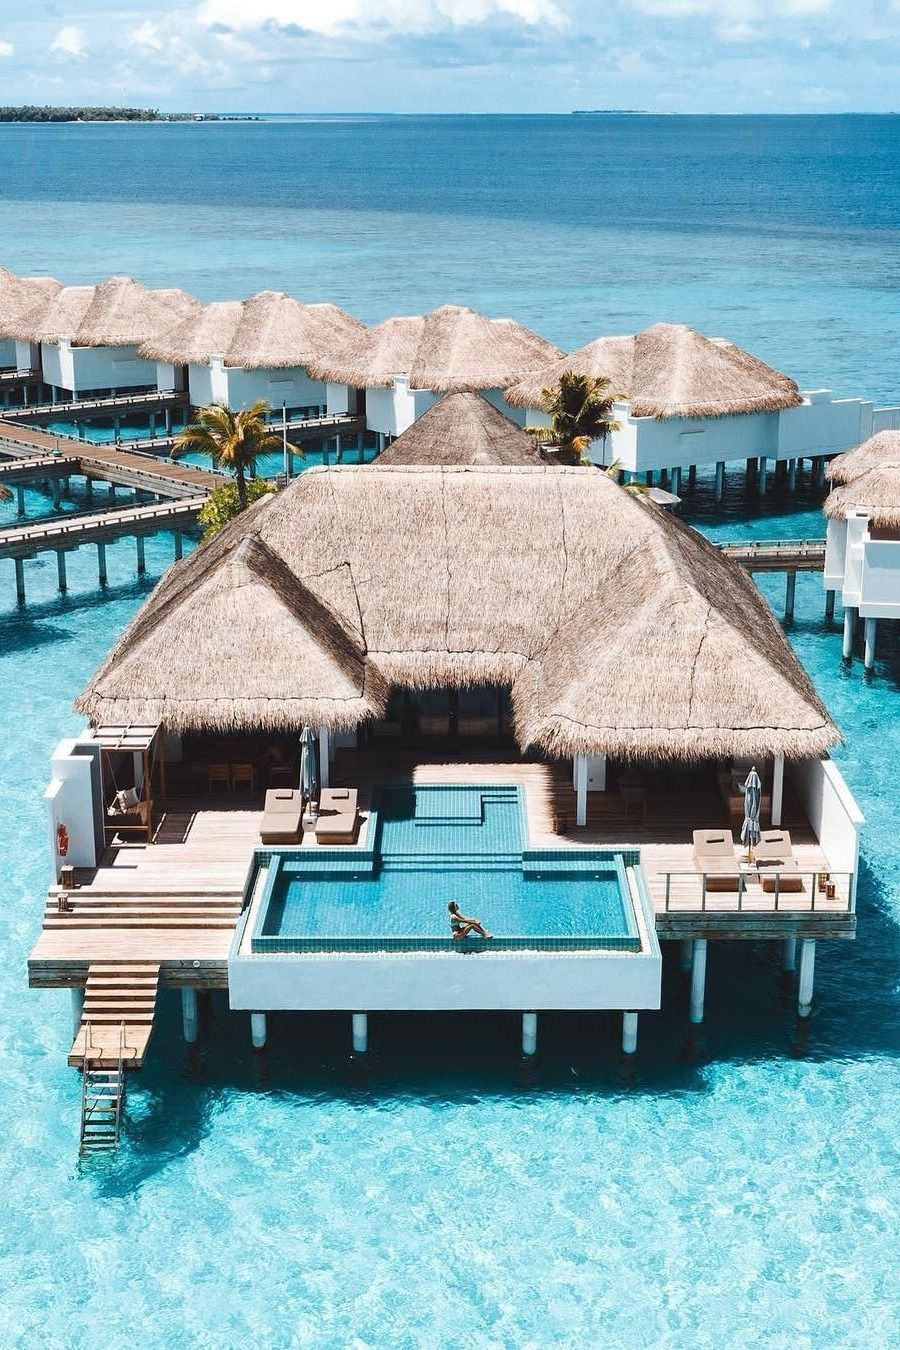 20 Amazing Hotels In Striking Locations You Must Visit